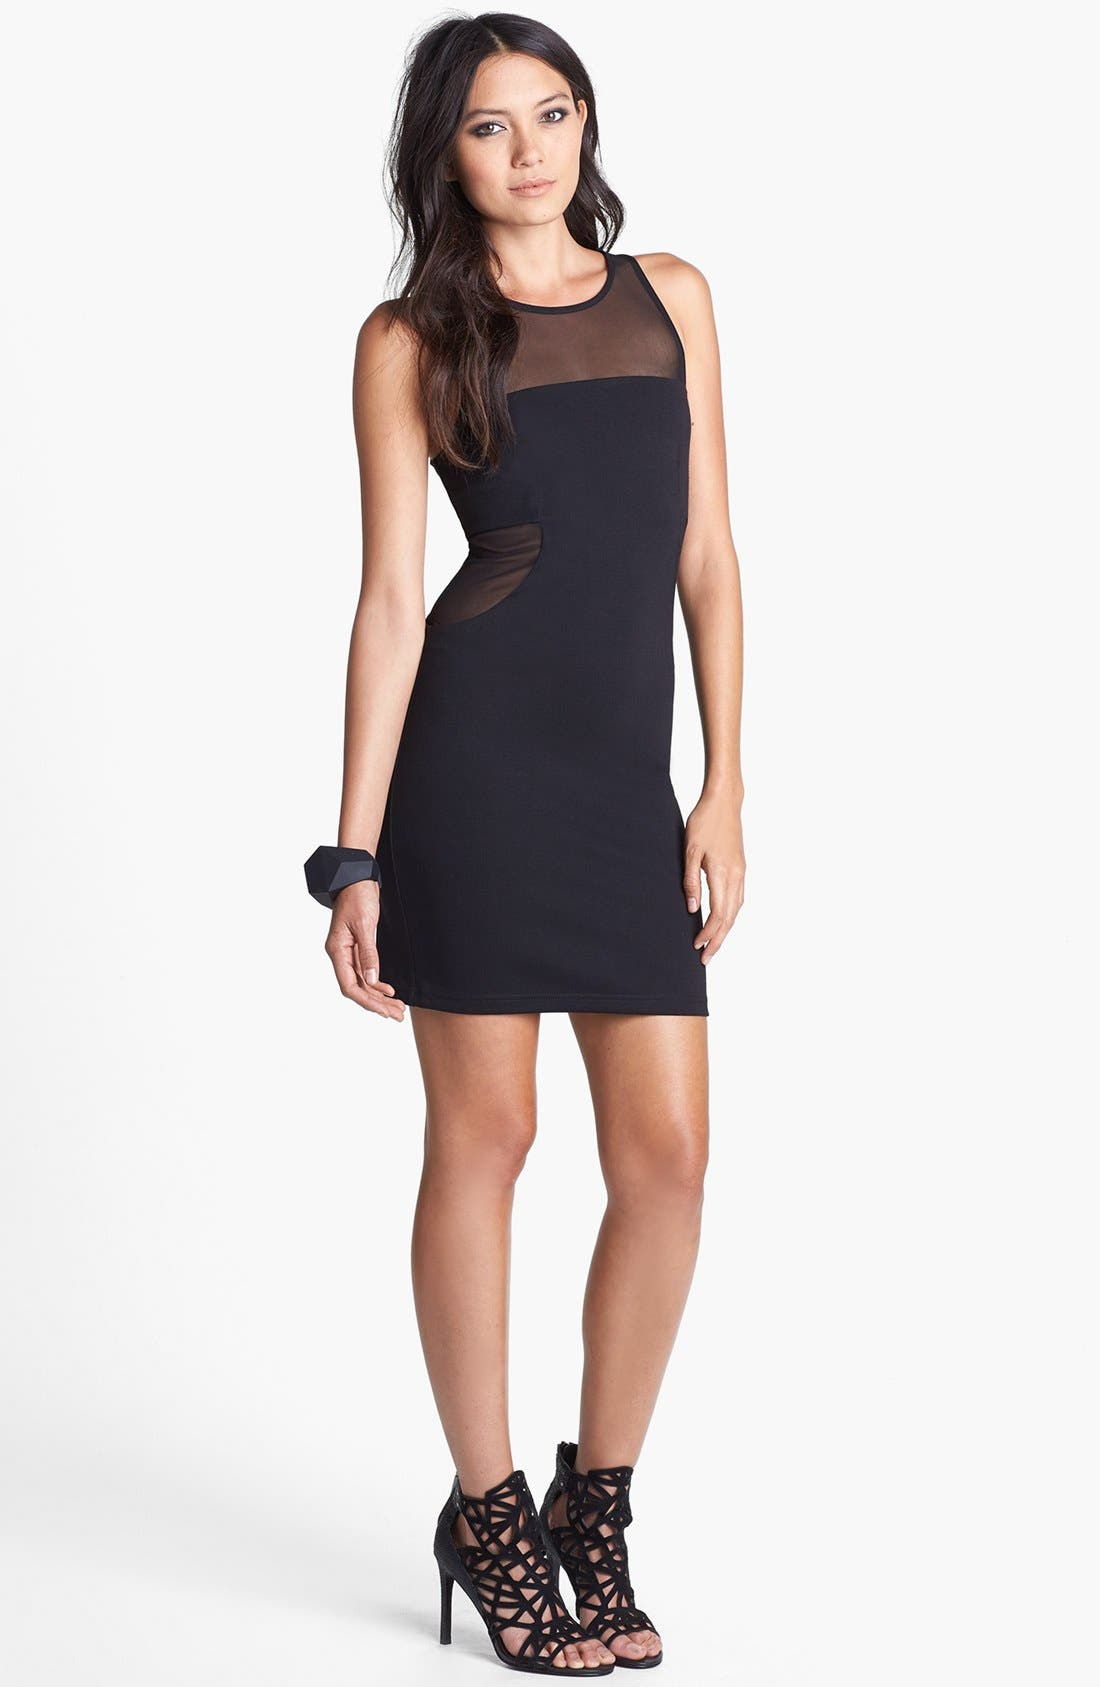 Alternate Image 1 Selected - Like Mynded Mesh Inset Body-Con Dress